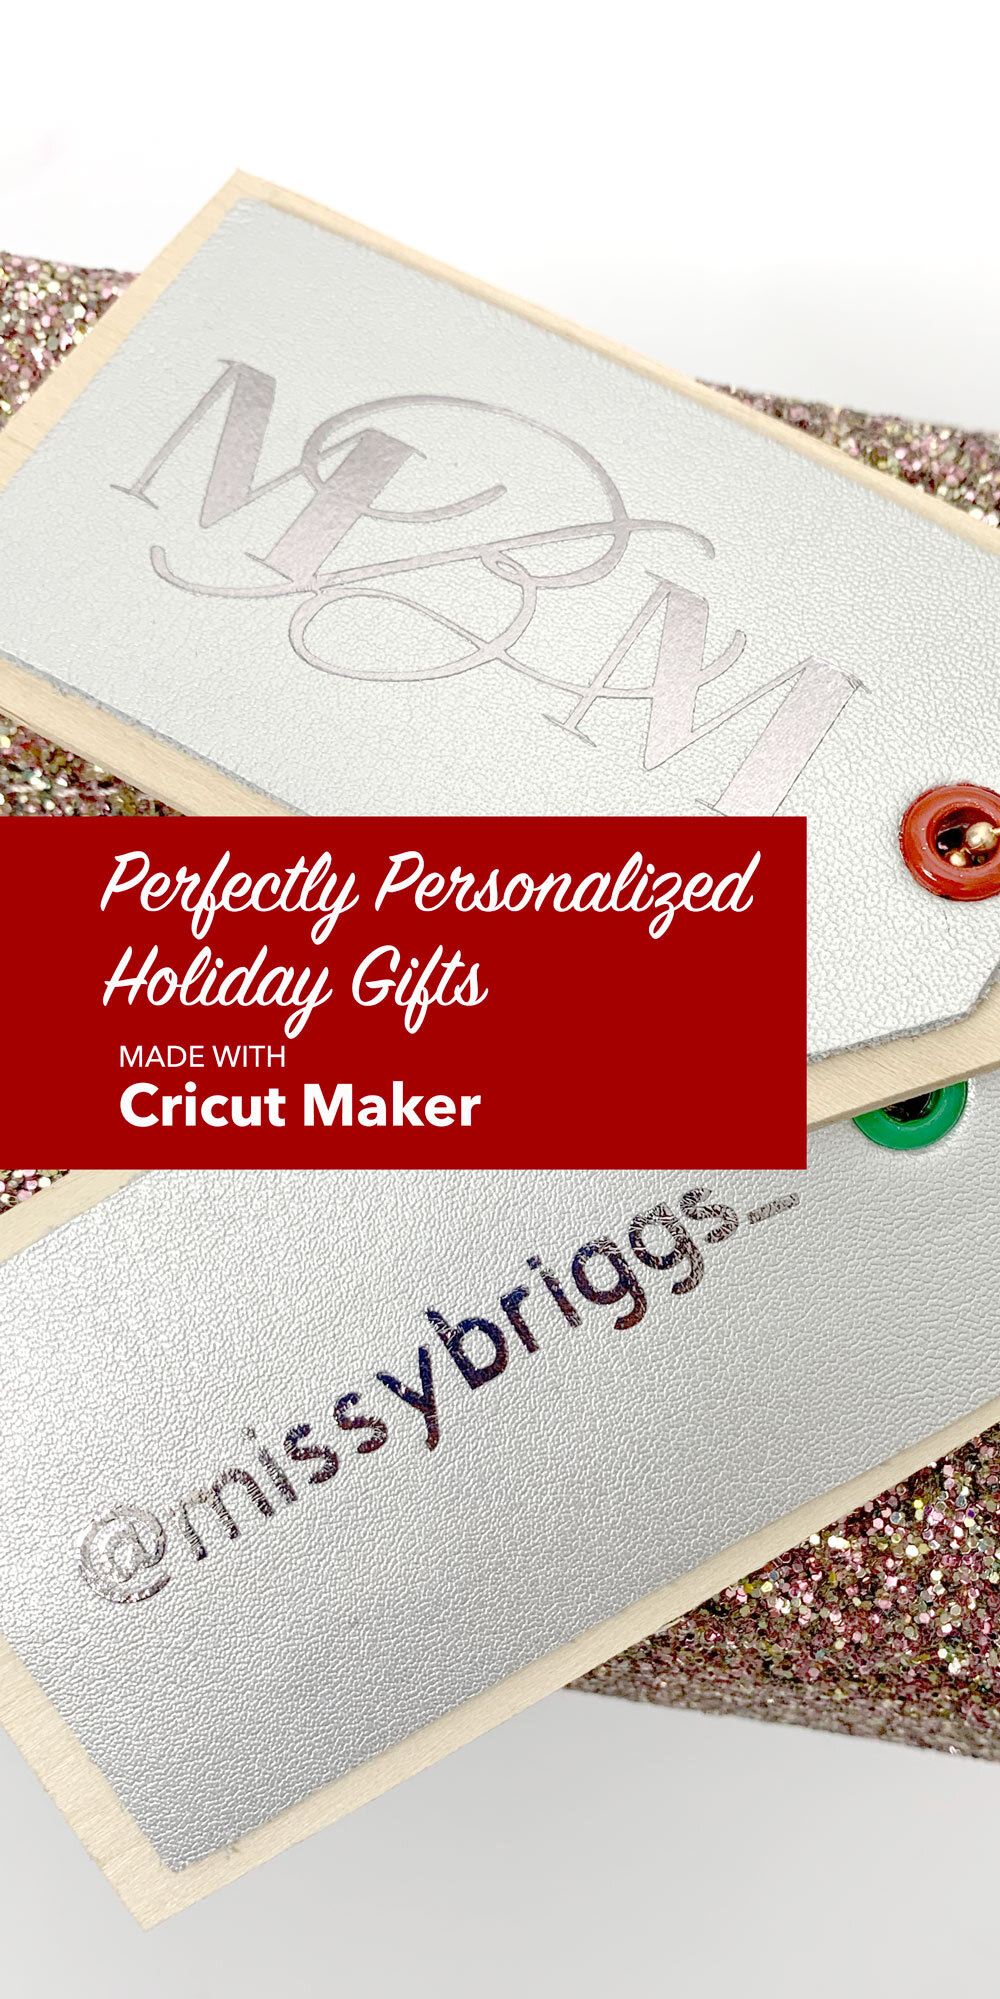 Cricut-Maker-Personalized-gifts-pin-luggage-tag.jpg